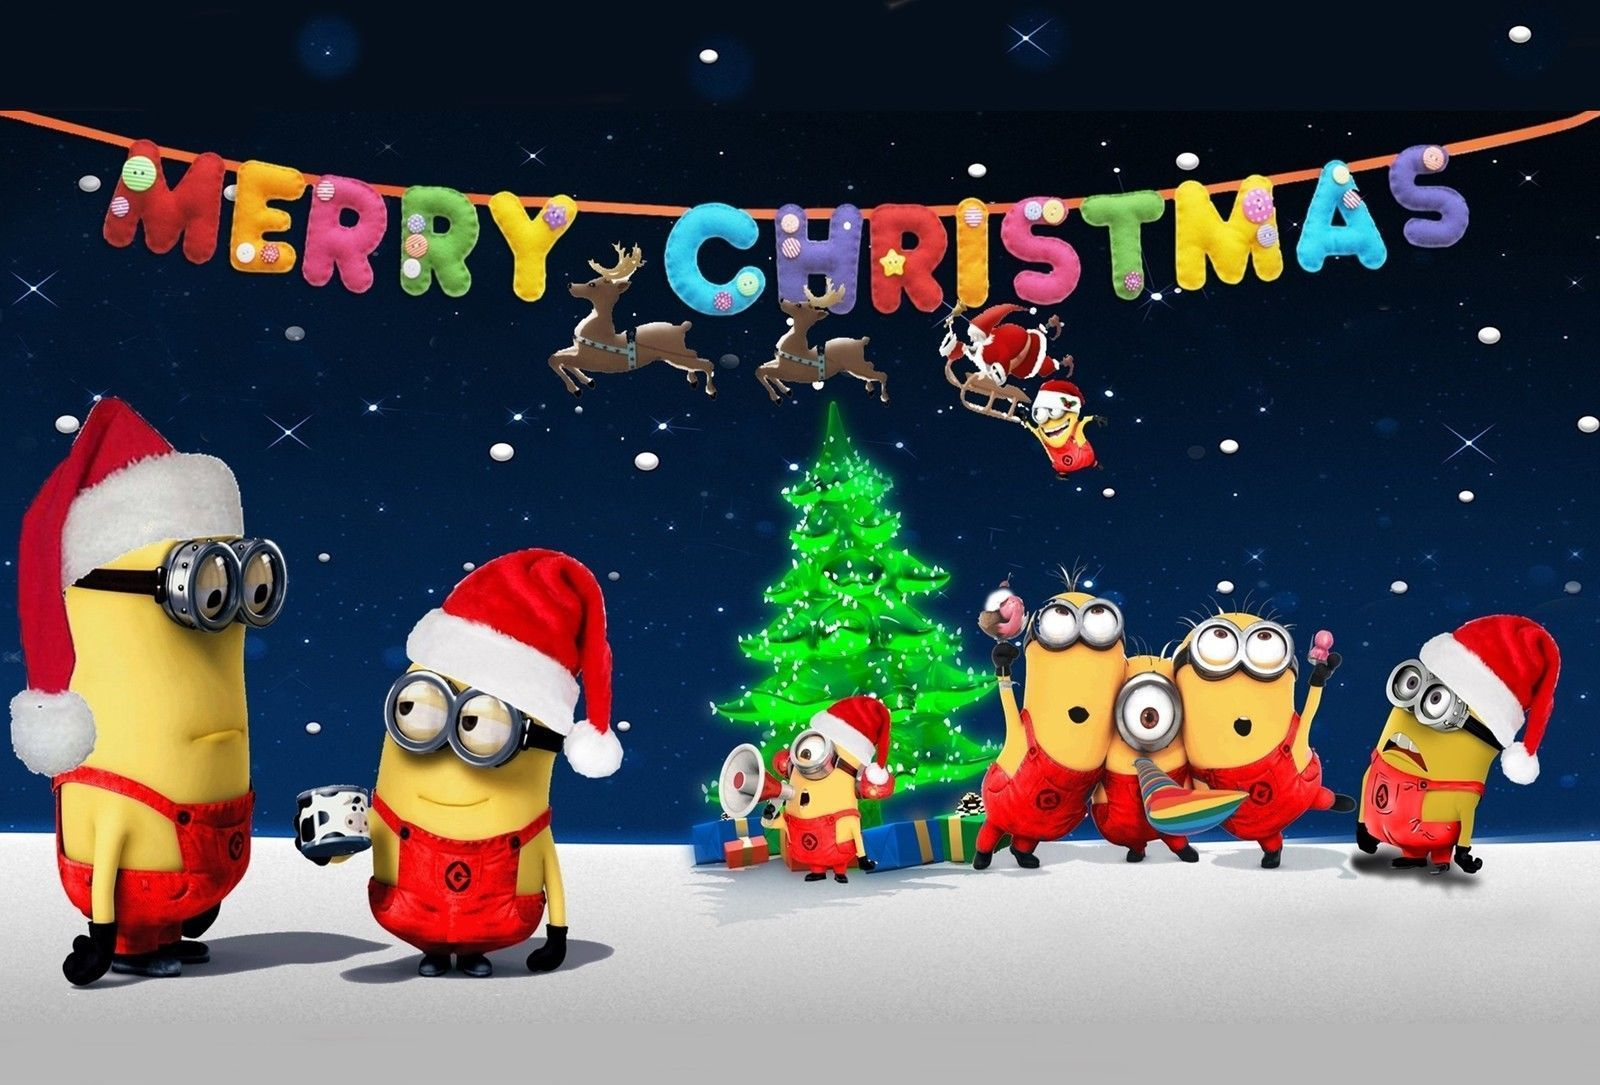 minions christmas desktop tablet wallpaper - Christmas Minions